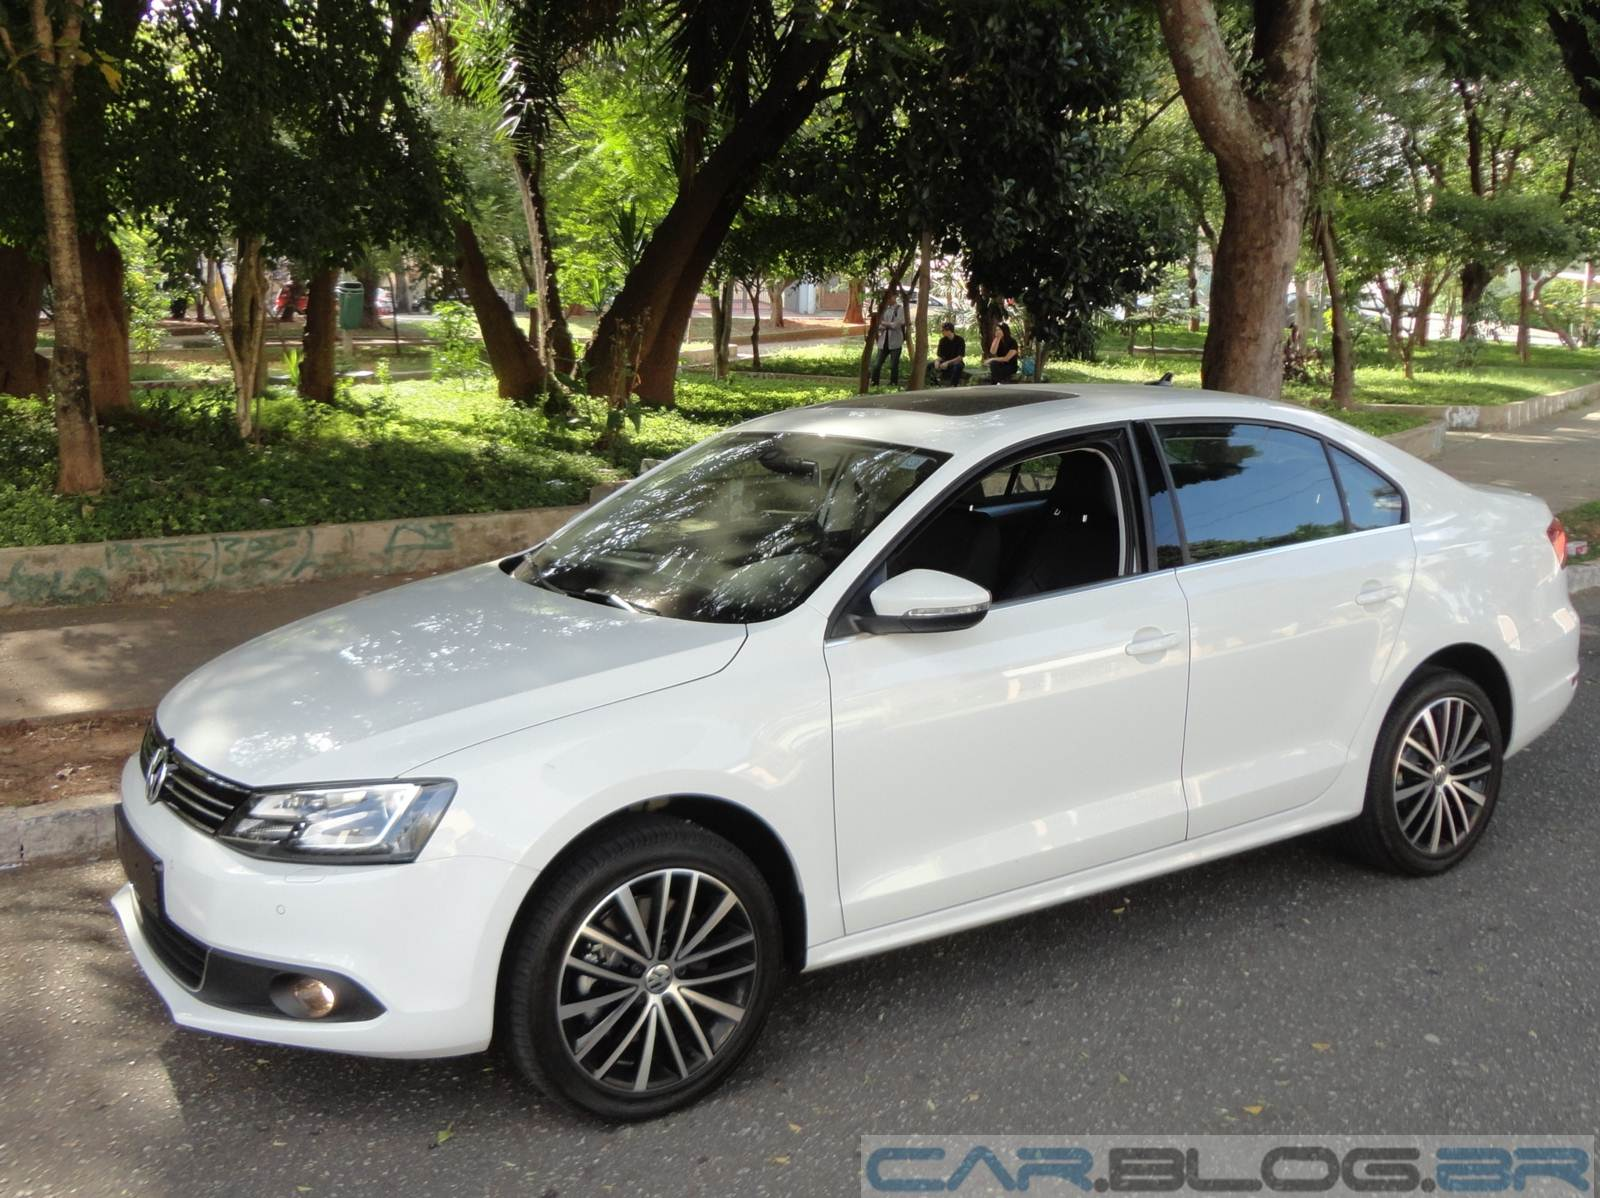 VW Jetta TSIO 2014 - descontos